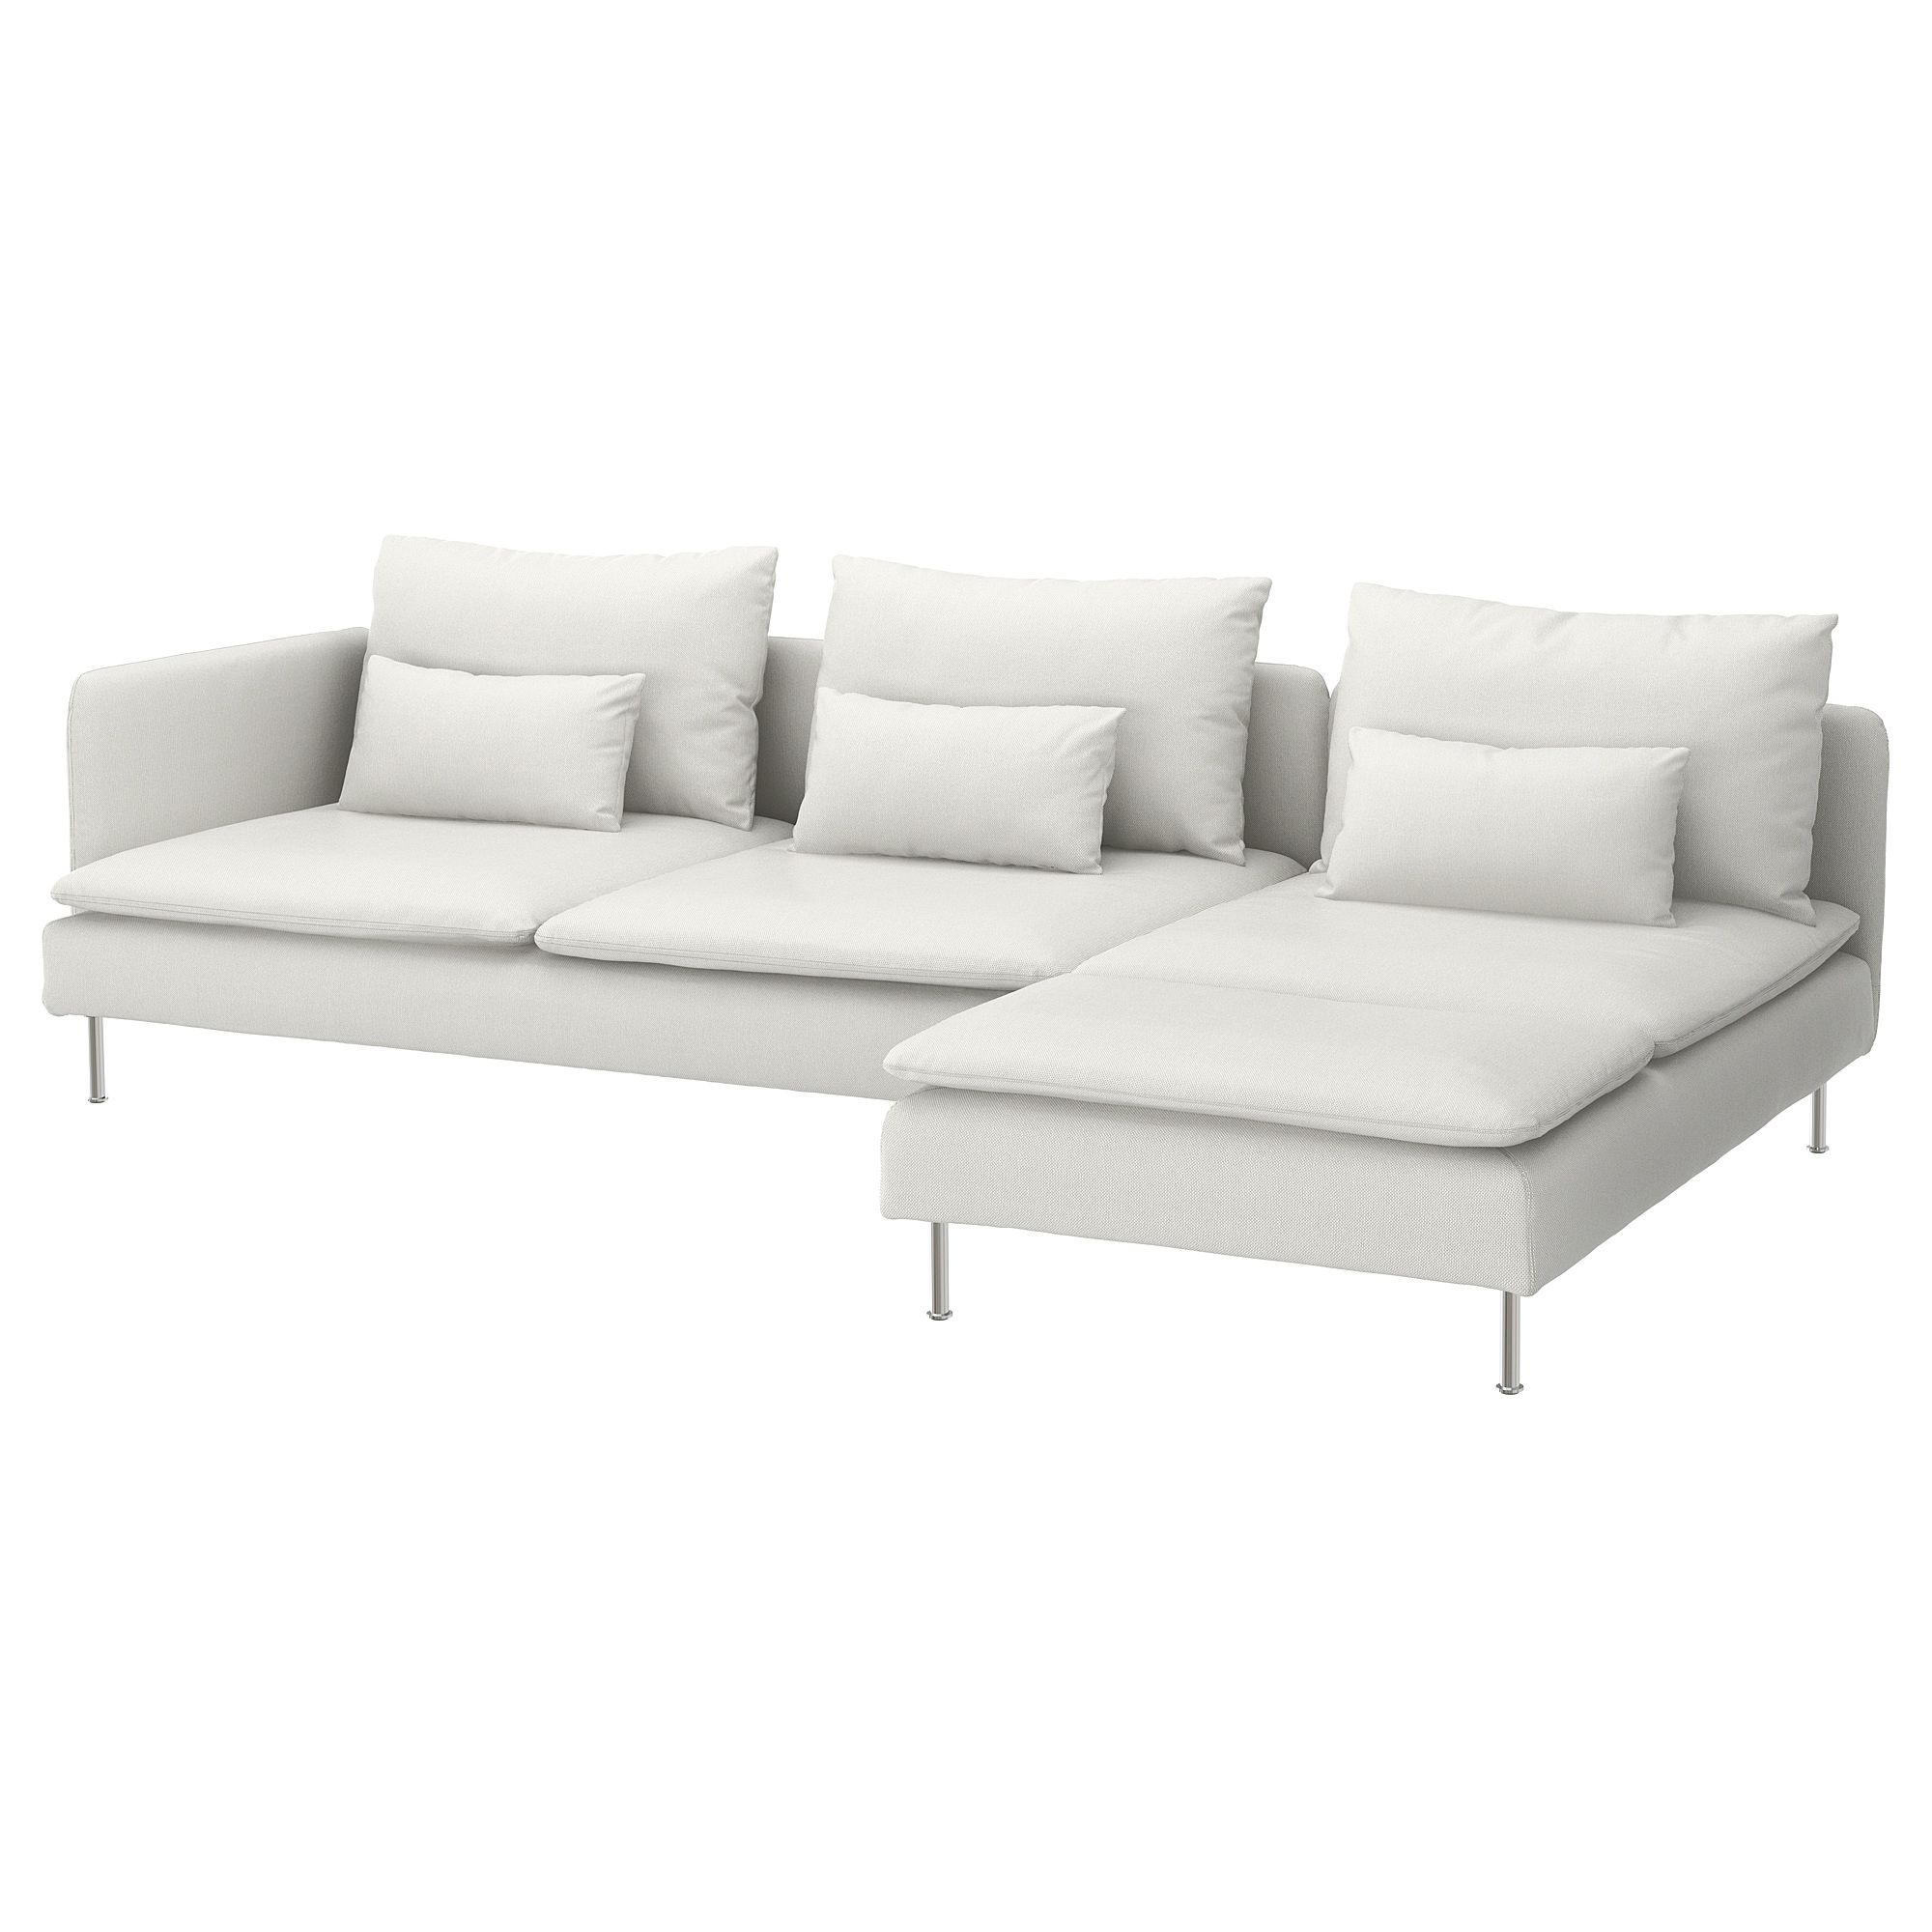 SÖDERHAMN Sectional, 4seat with chaise and open end